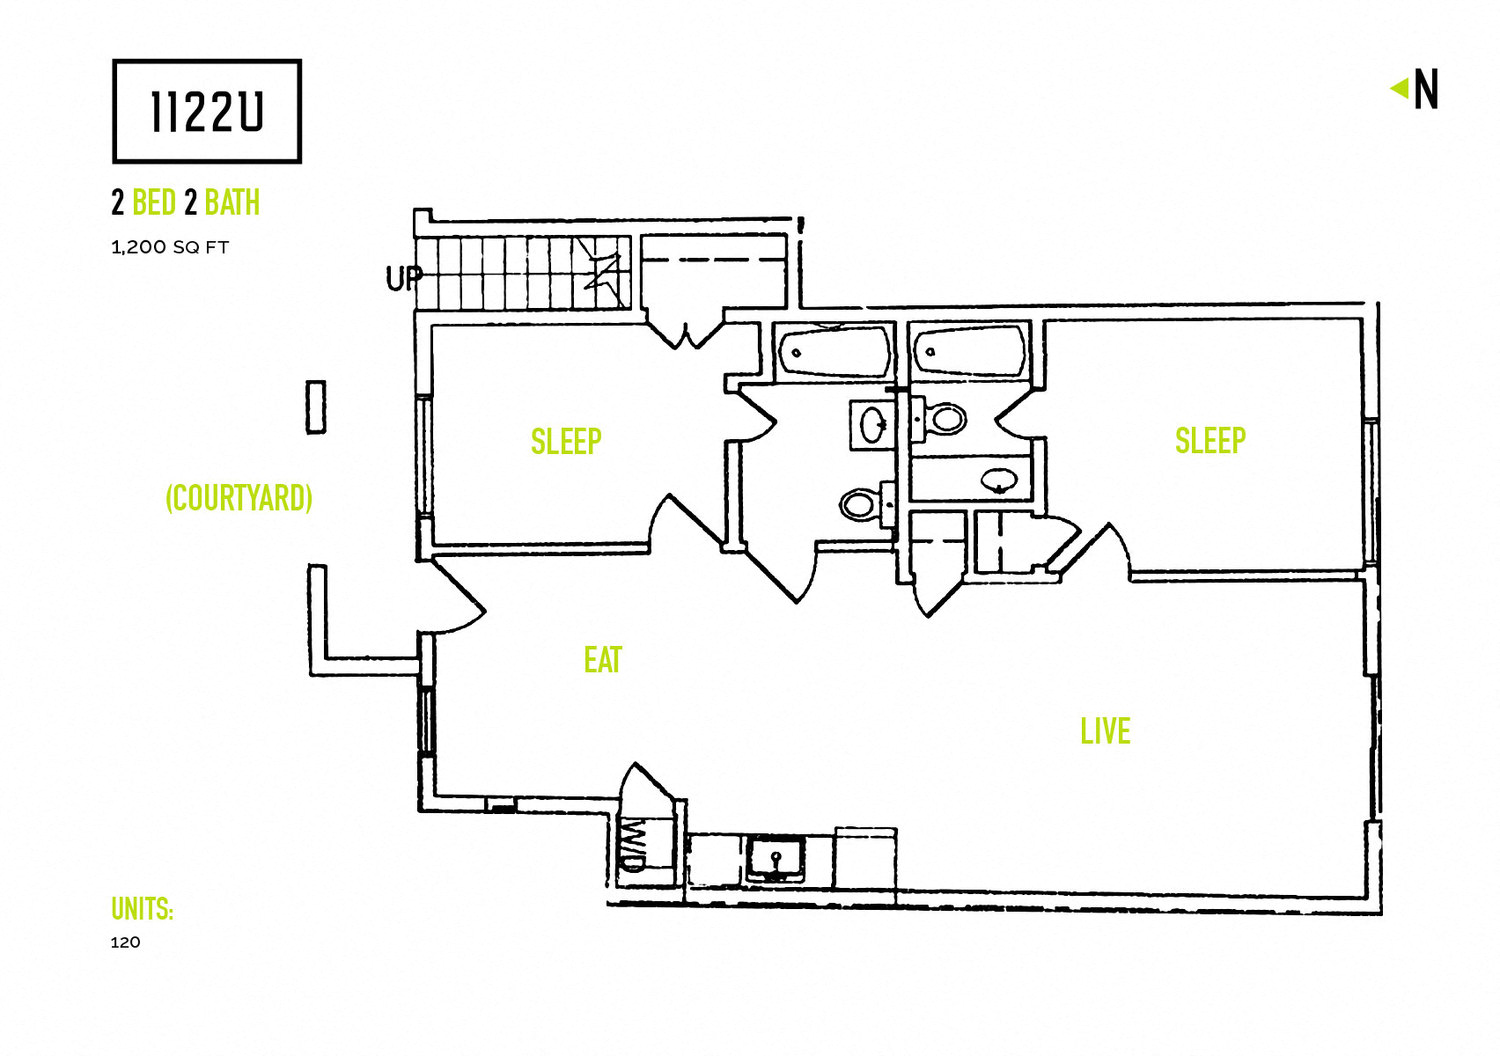 2 bedroom layout at 1122U Apartments